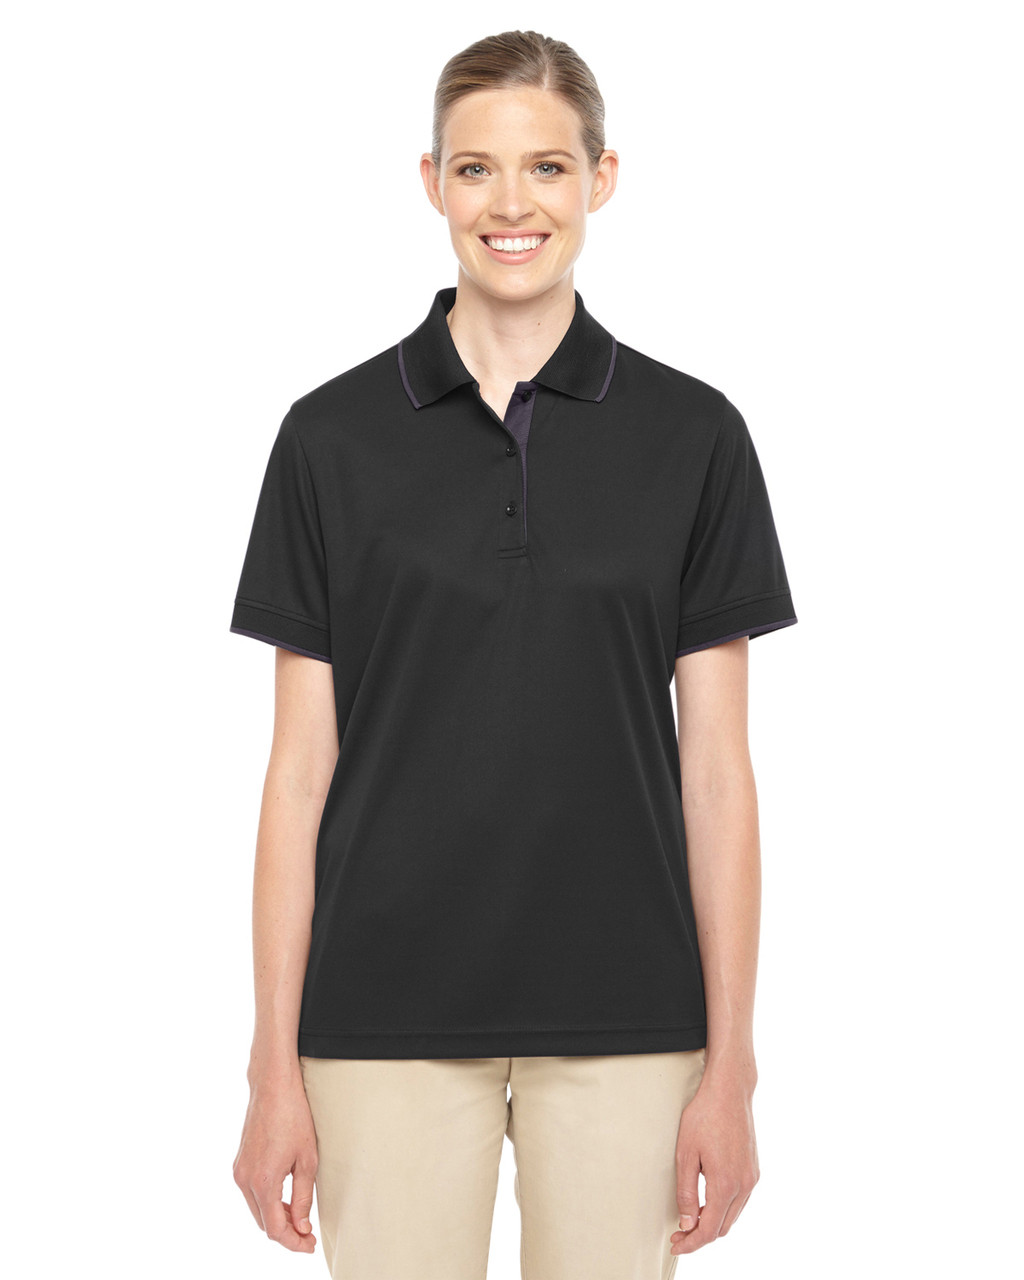 Black/Carbon 78222 Ash City - Core 365 Ladies' Motive Performance Pique Polo Shirt with Tipped Collar | Blankclothing.ca